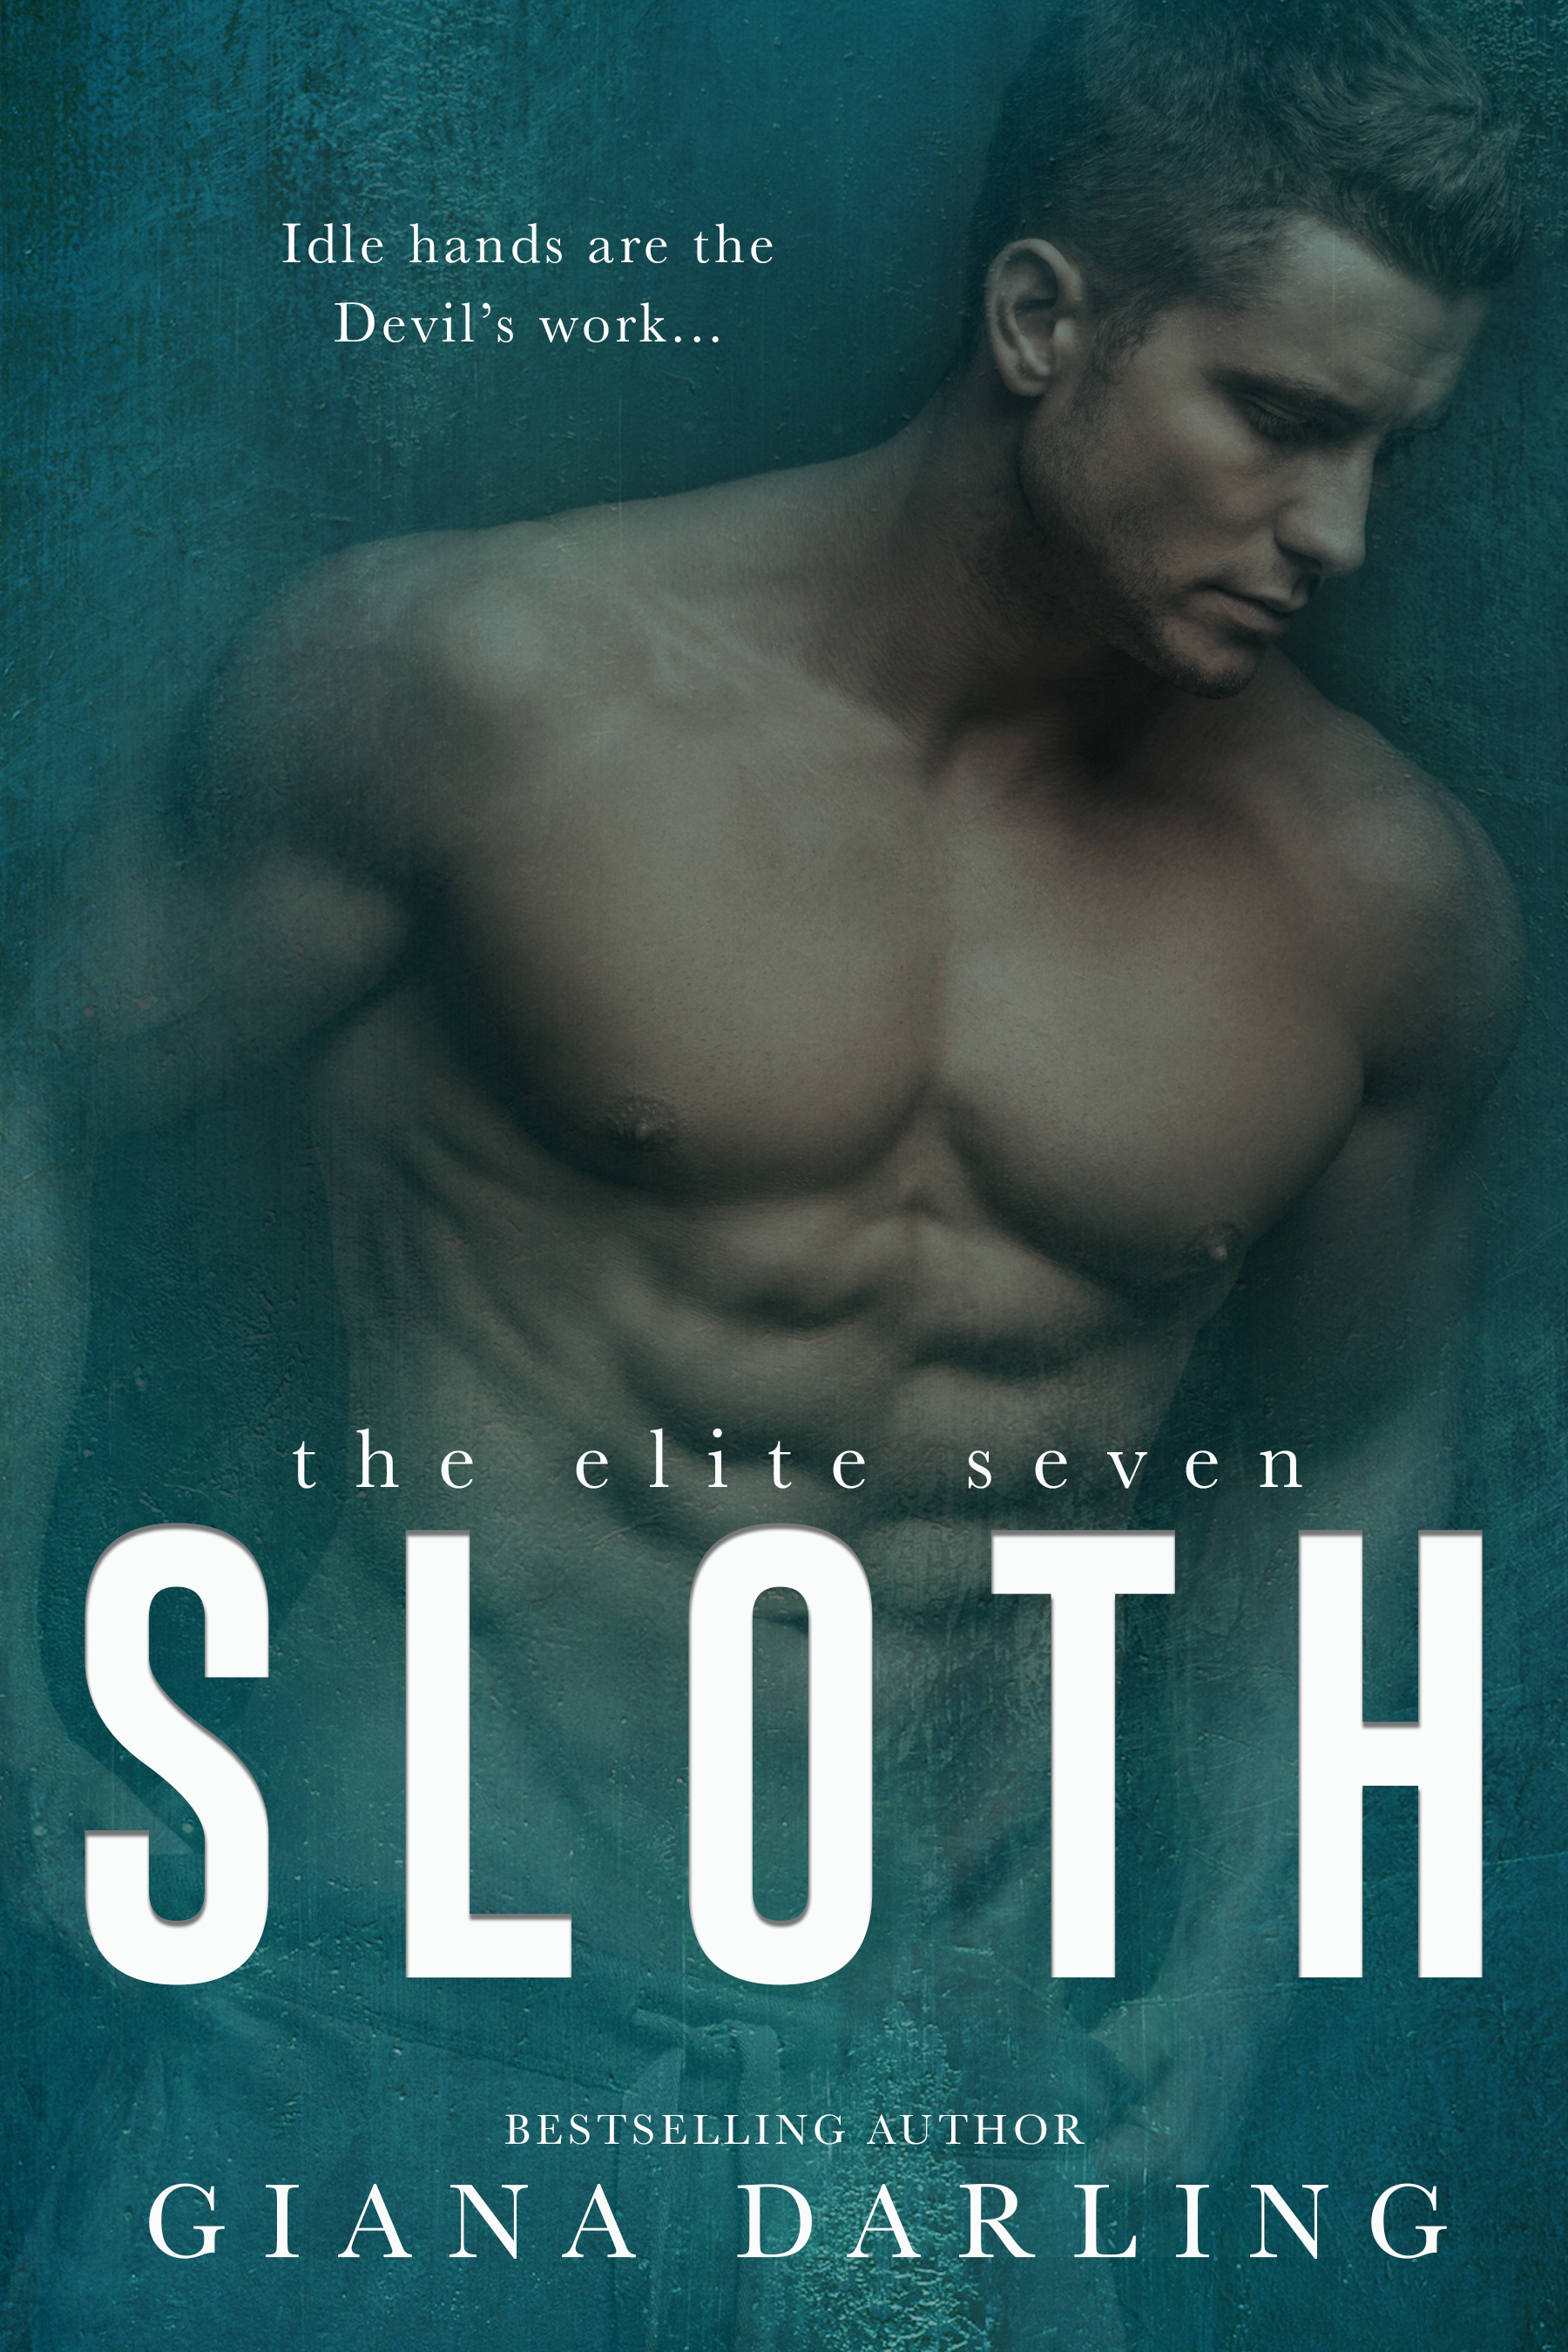 Sloth by Giana Darling